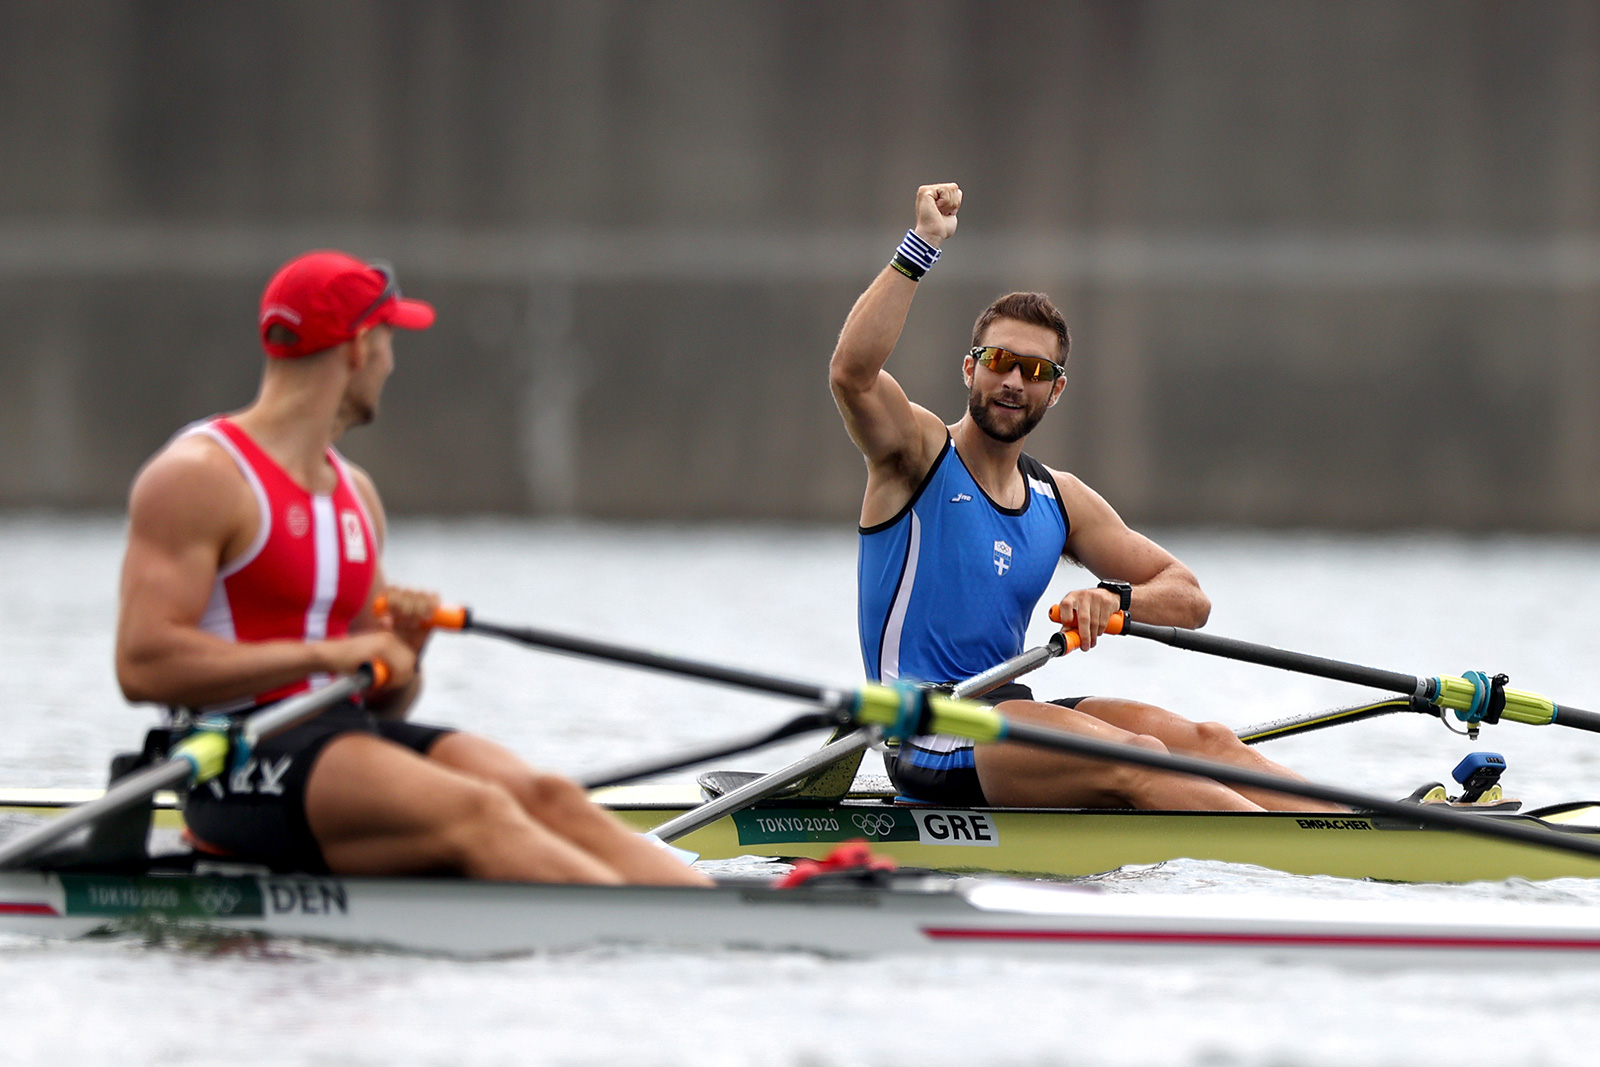 Stefanos Ntouskos of Greece reacts after winning the gold medal during the men's single rowing final on Friday.